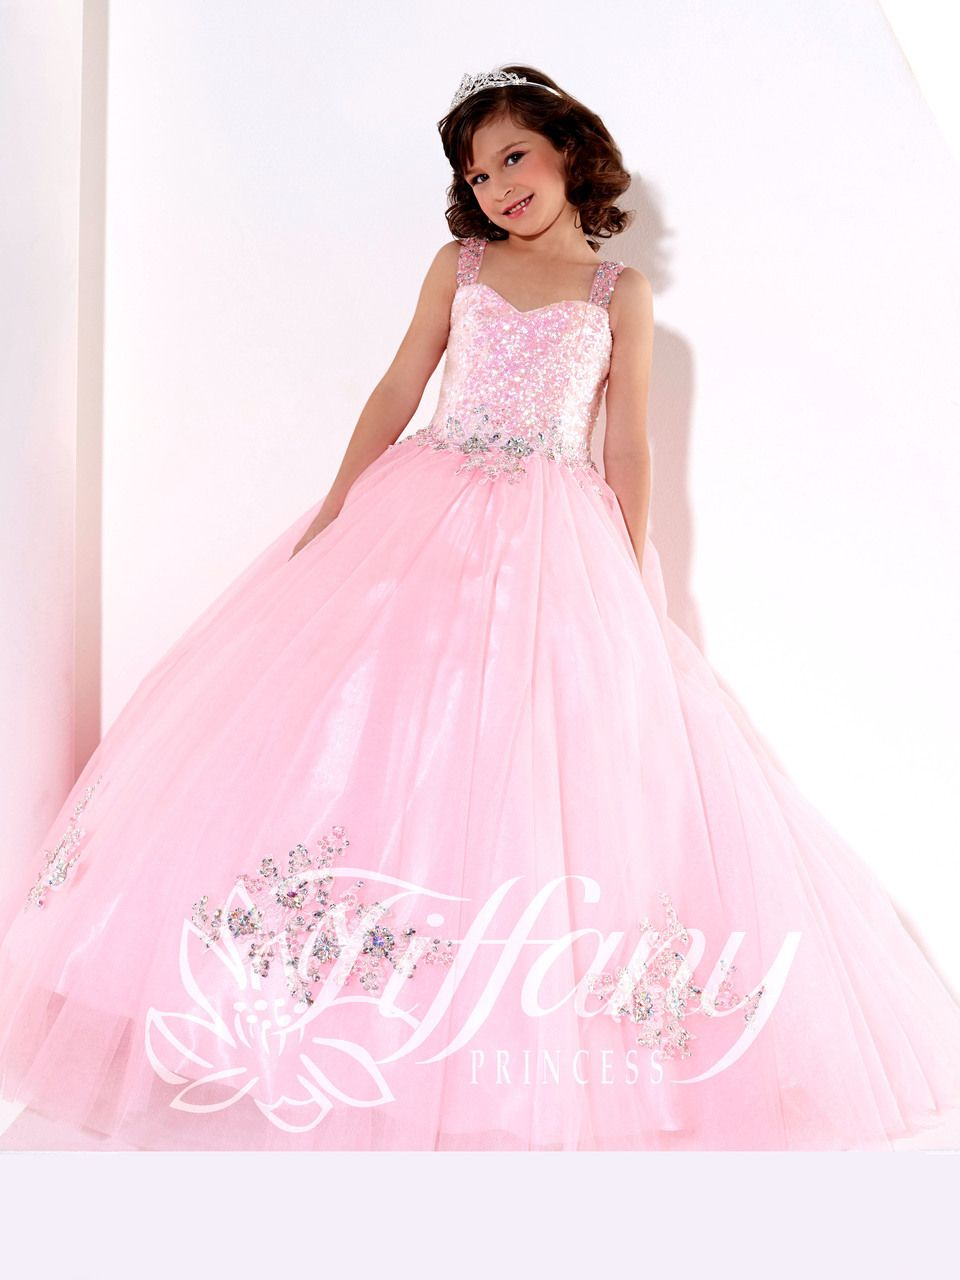 Tiffany Princess Pageant Dress 13395 | Pink Pageant Dress For Girls ...